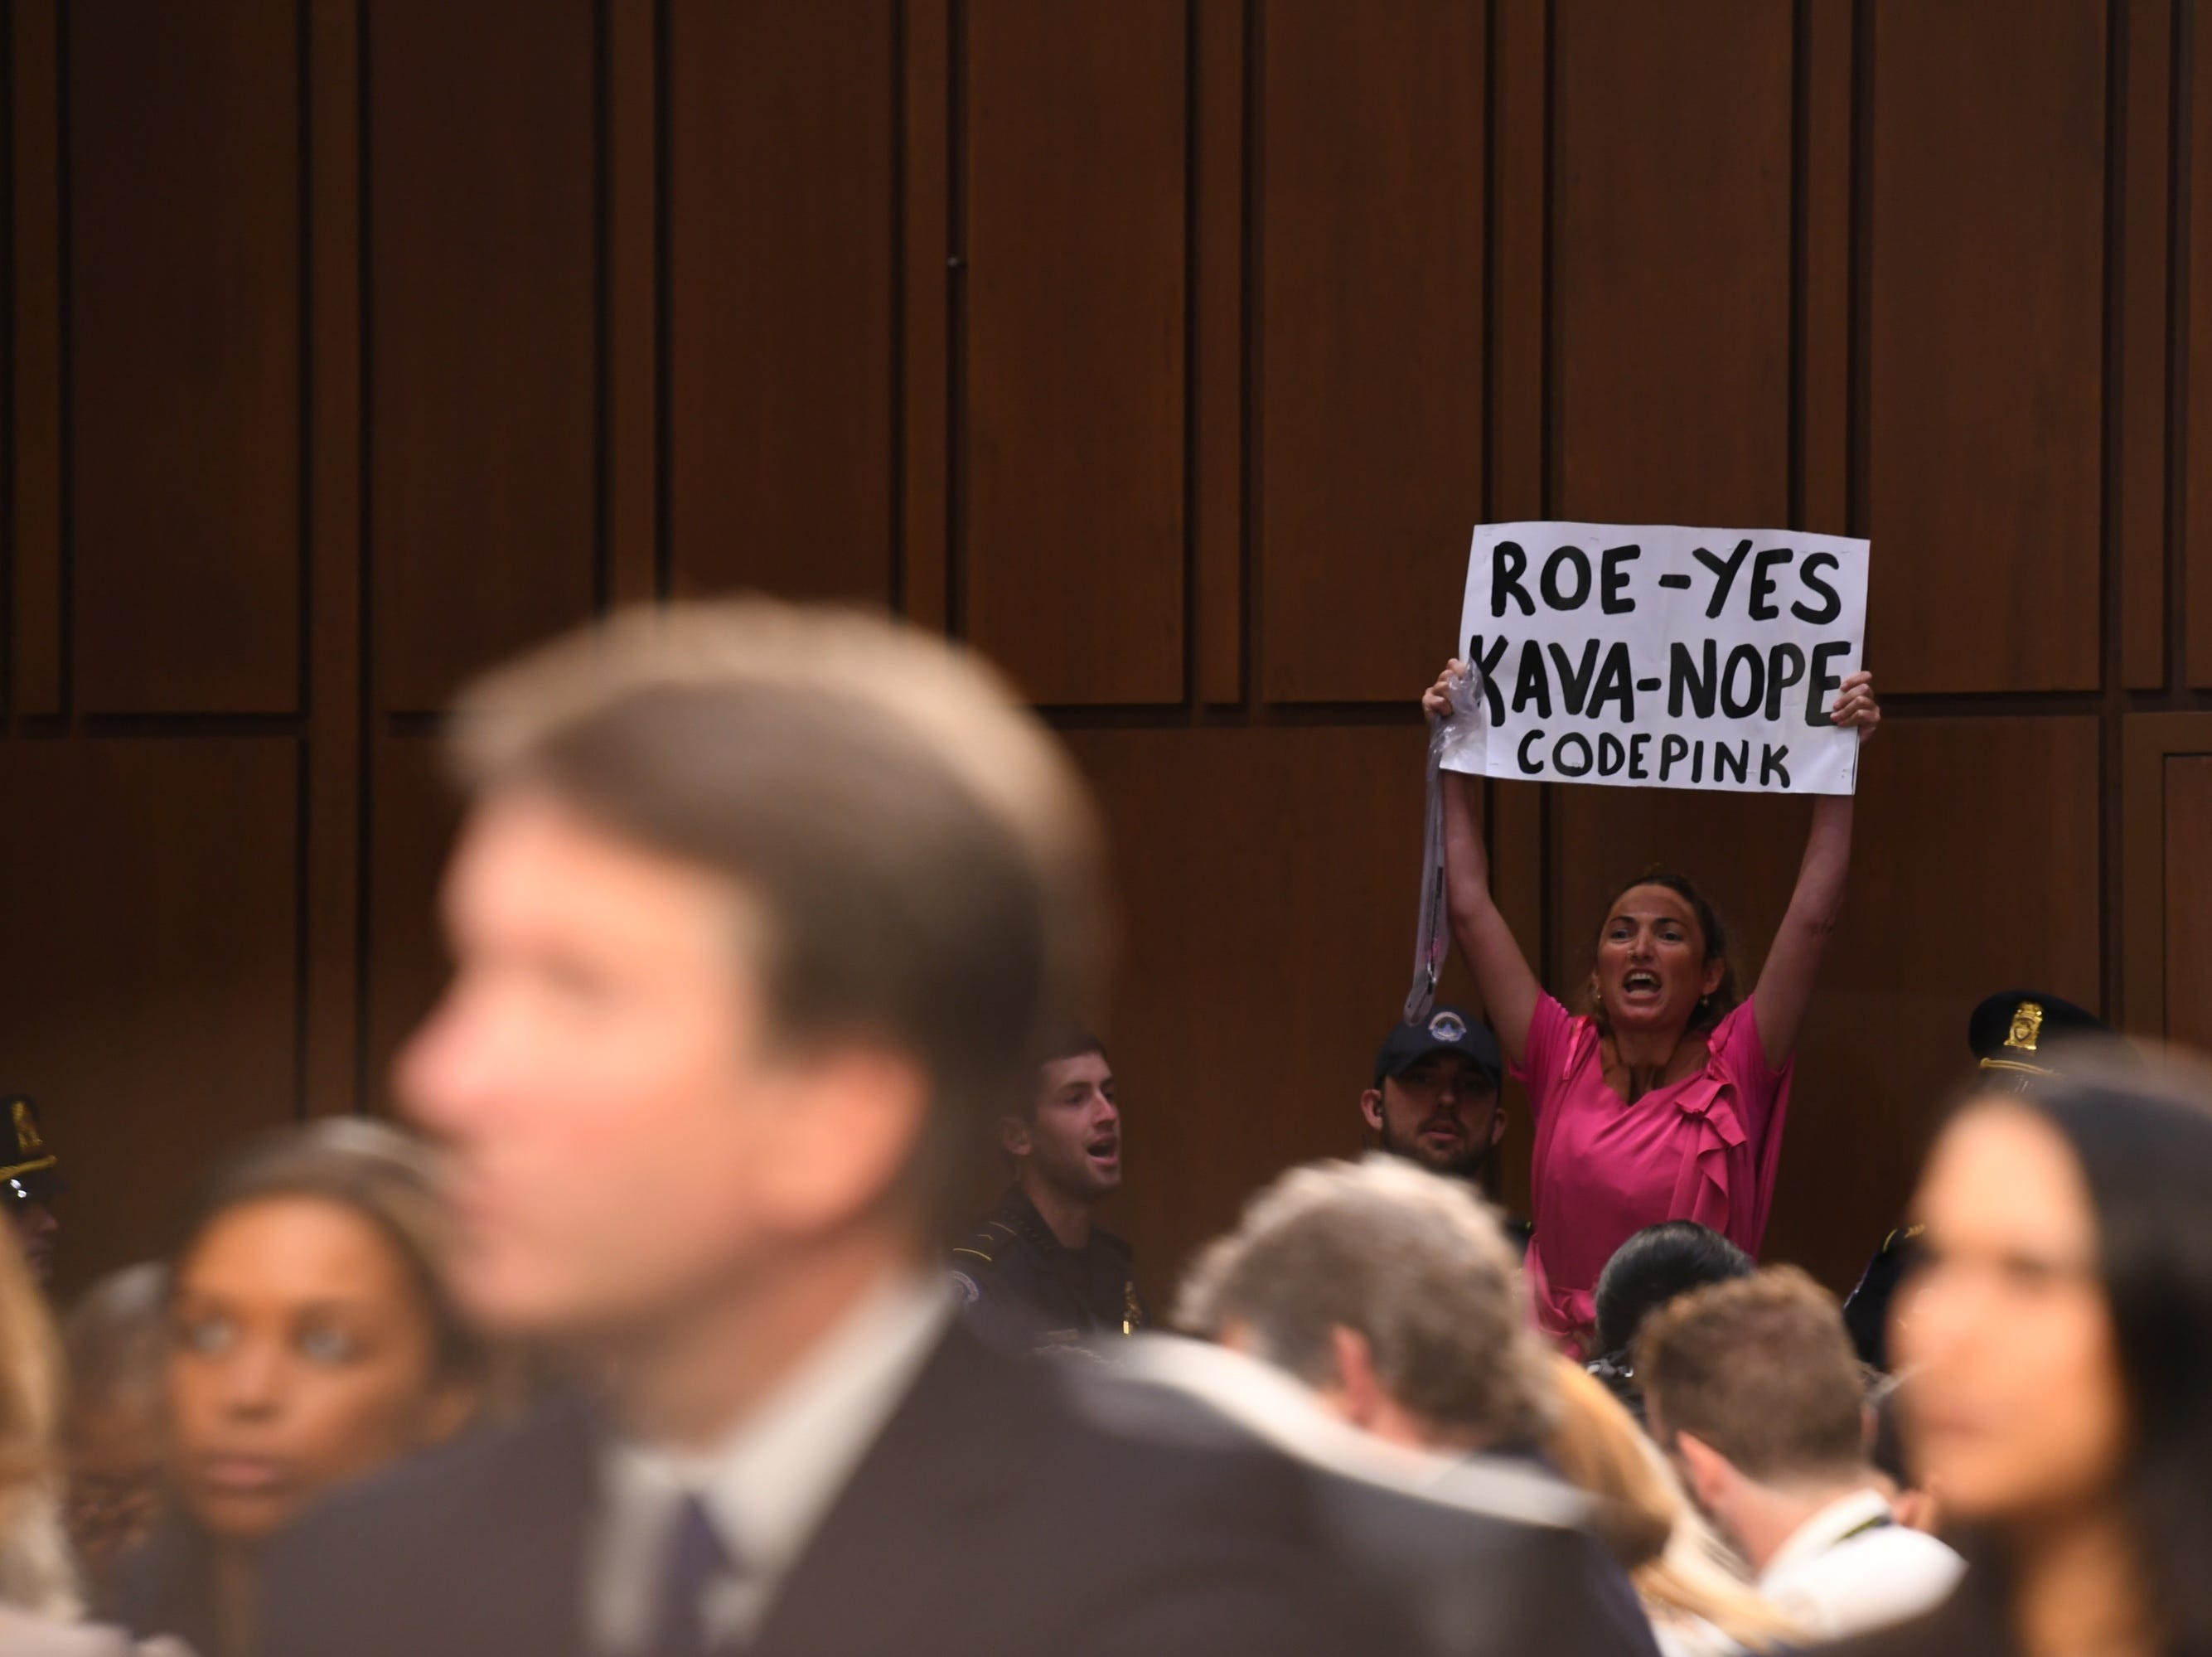 A protester interrupts the hearing for Supreme Court Associate Justice nominee Brett Kavanaugh on Sept. 4, 2018 in Washington.